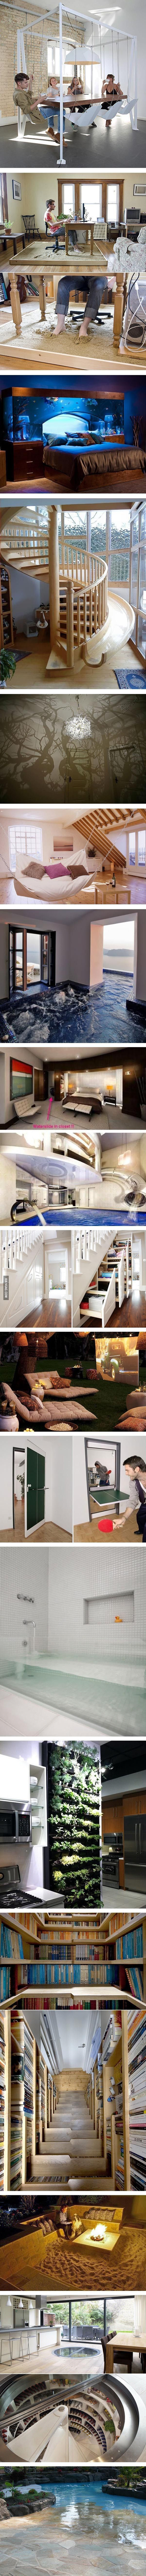 Built Ins this would be kind of